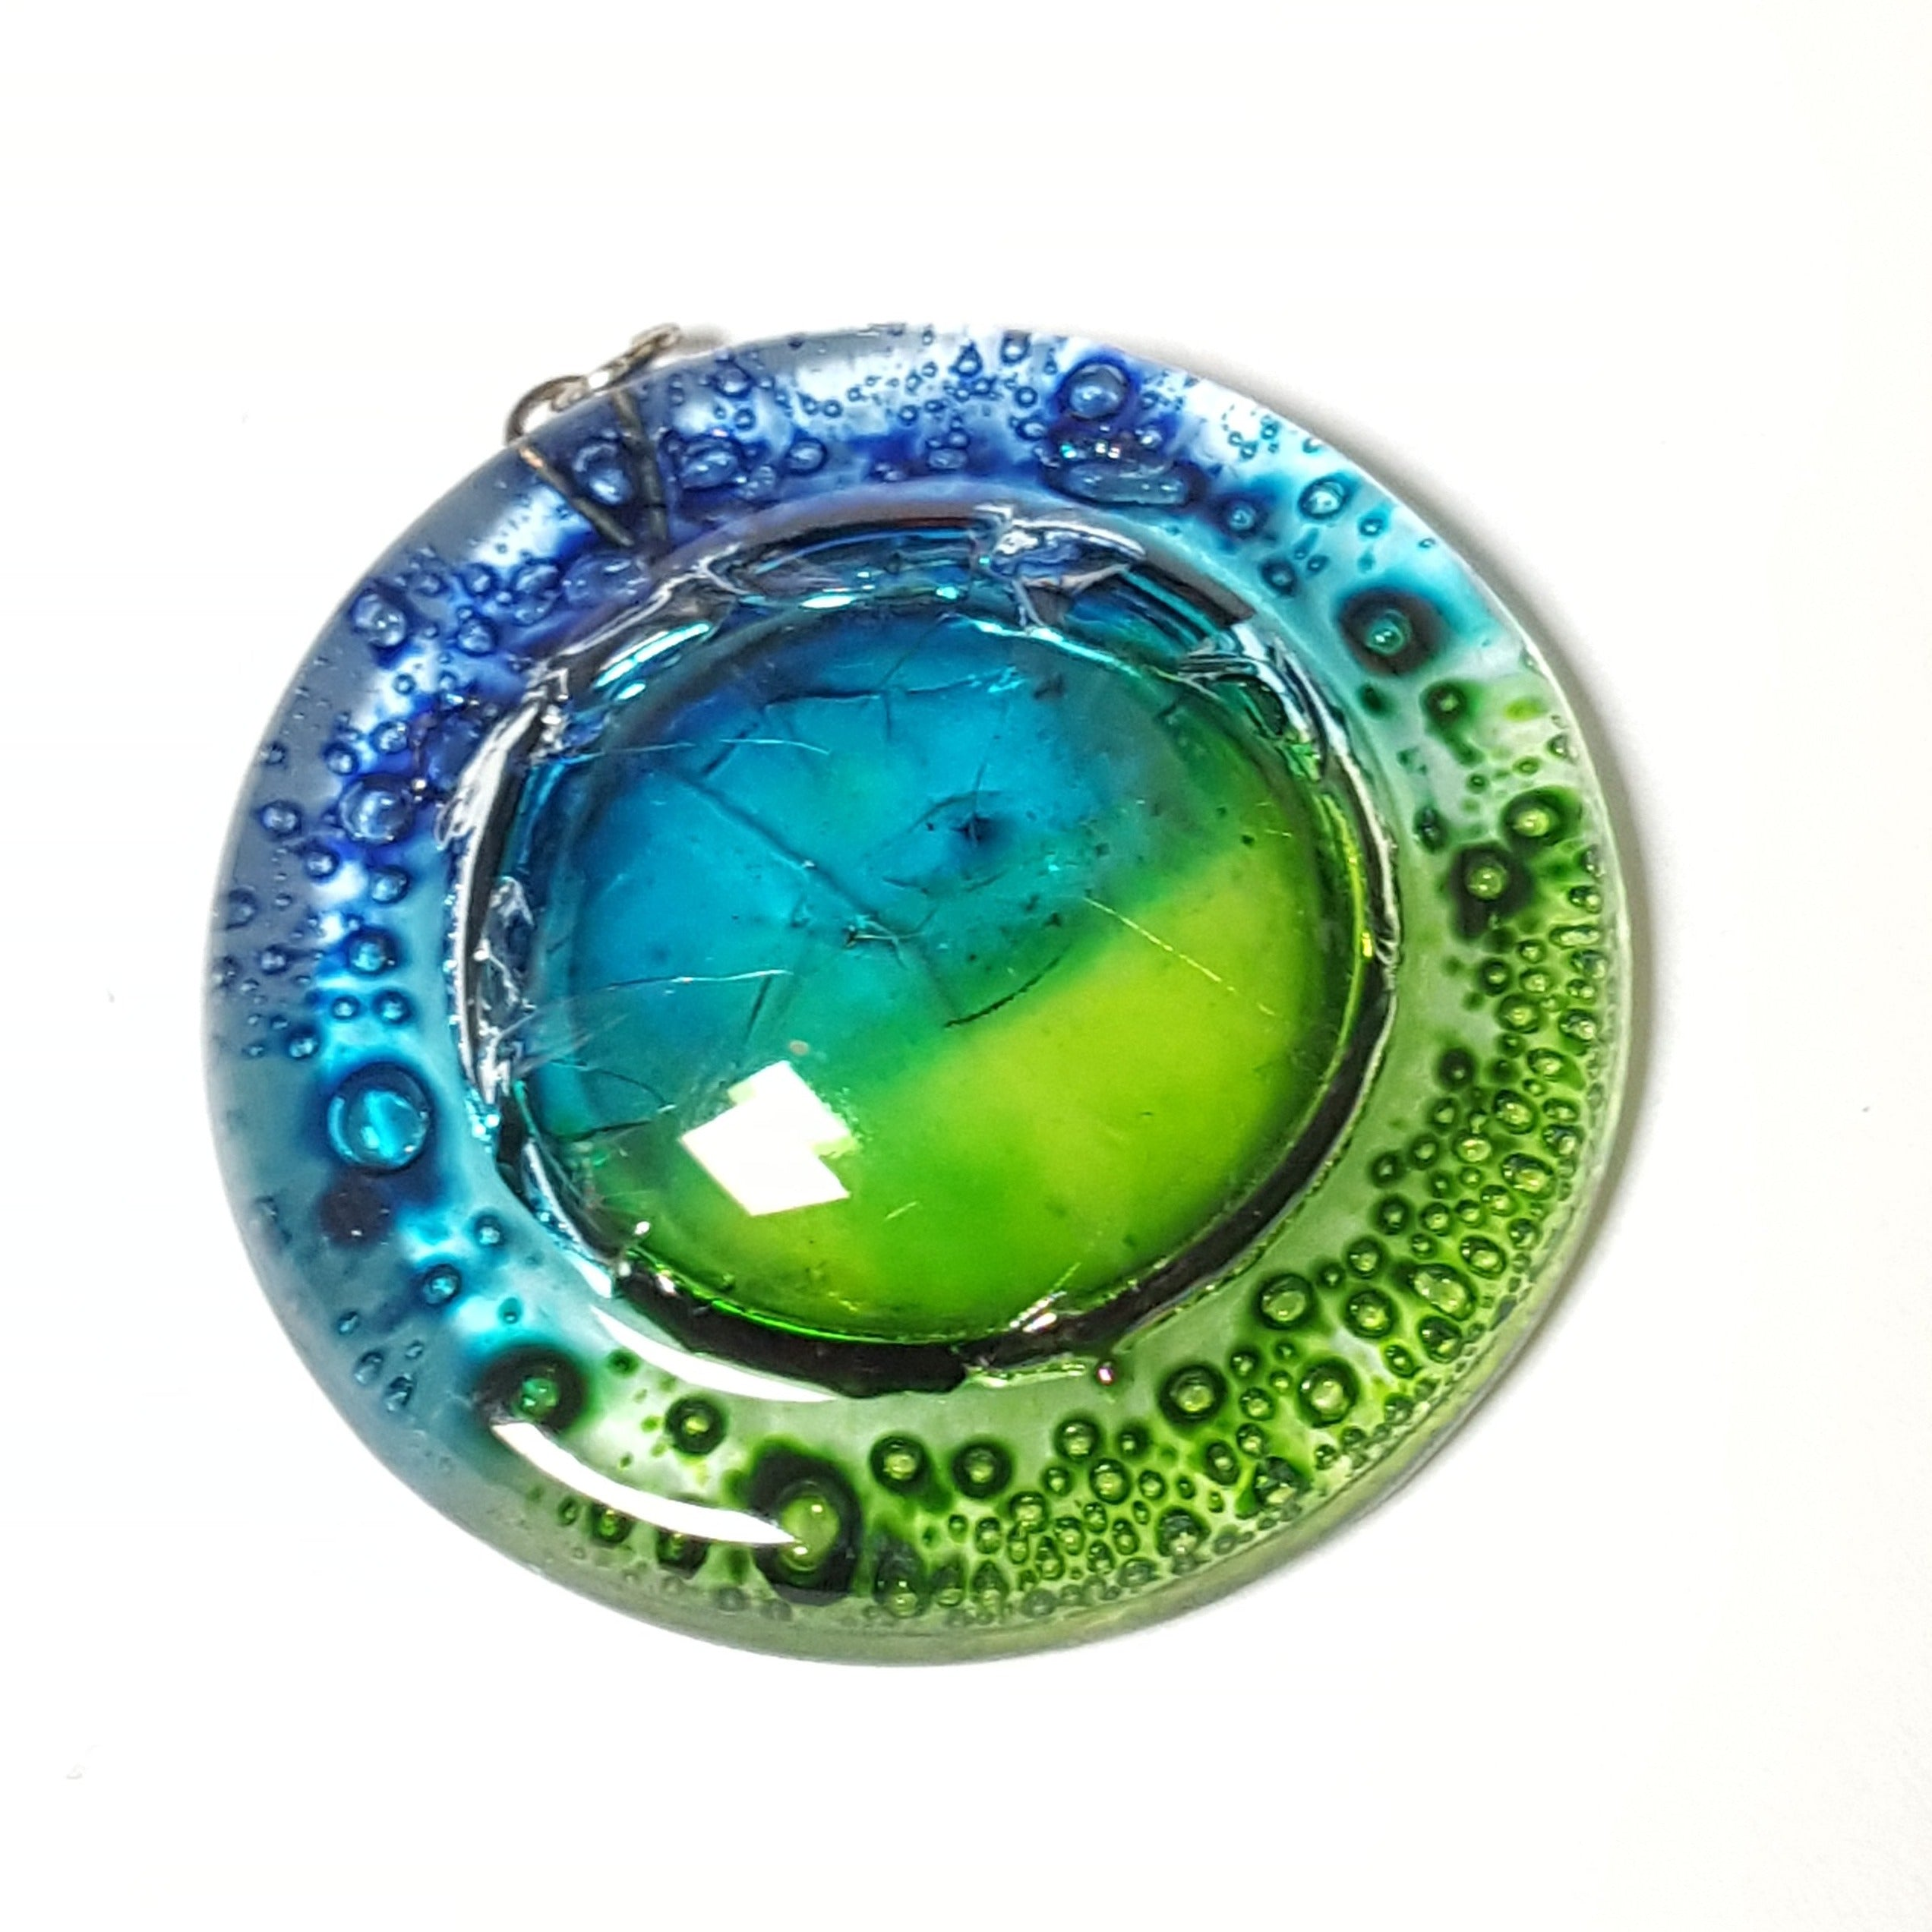 Blue, green Upcycled glass bead for craft project.